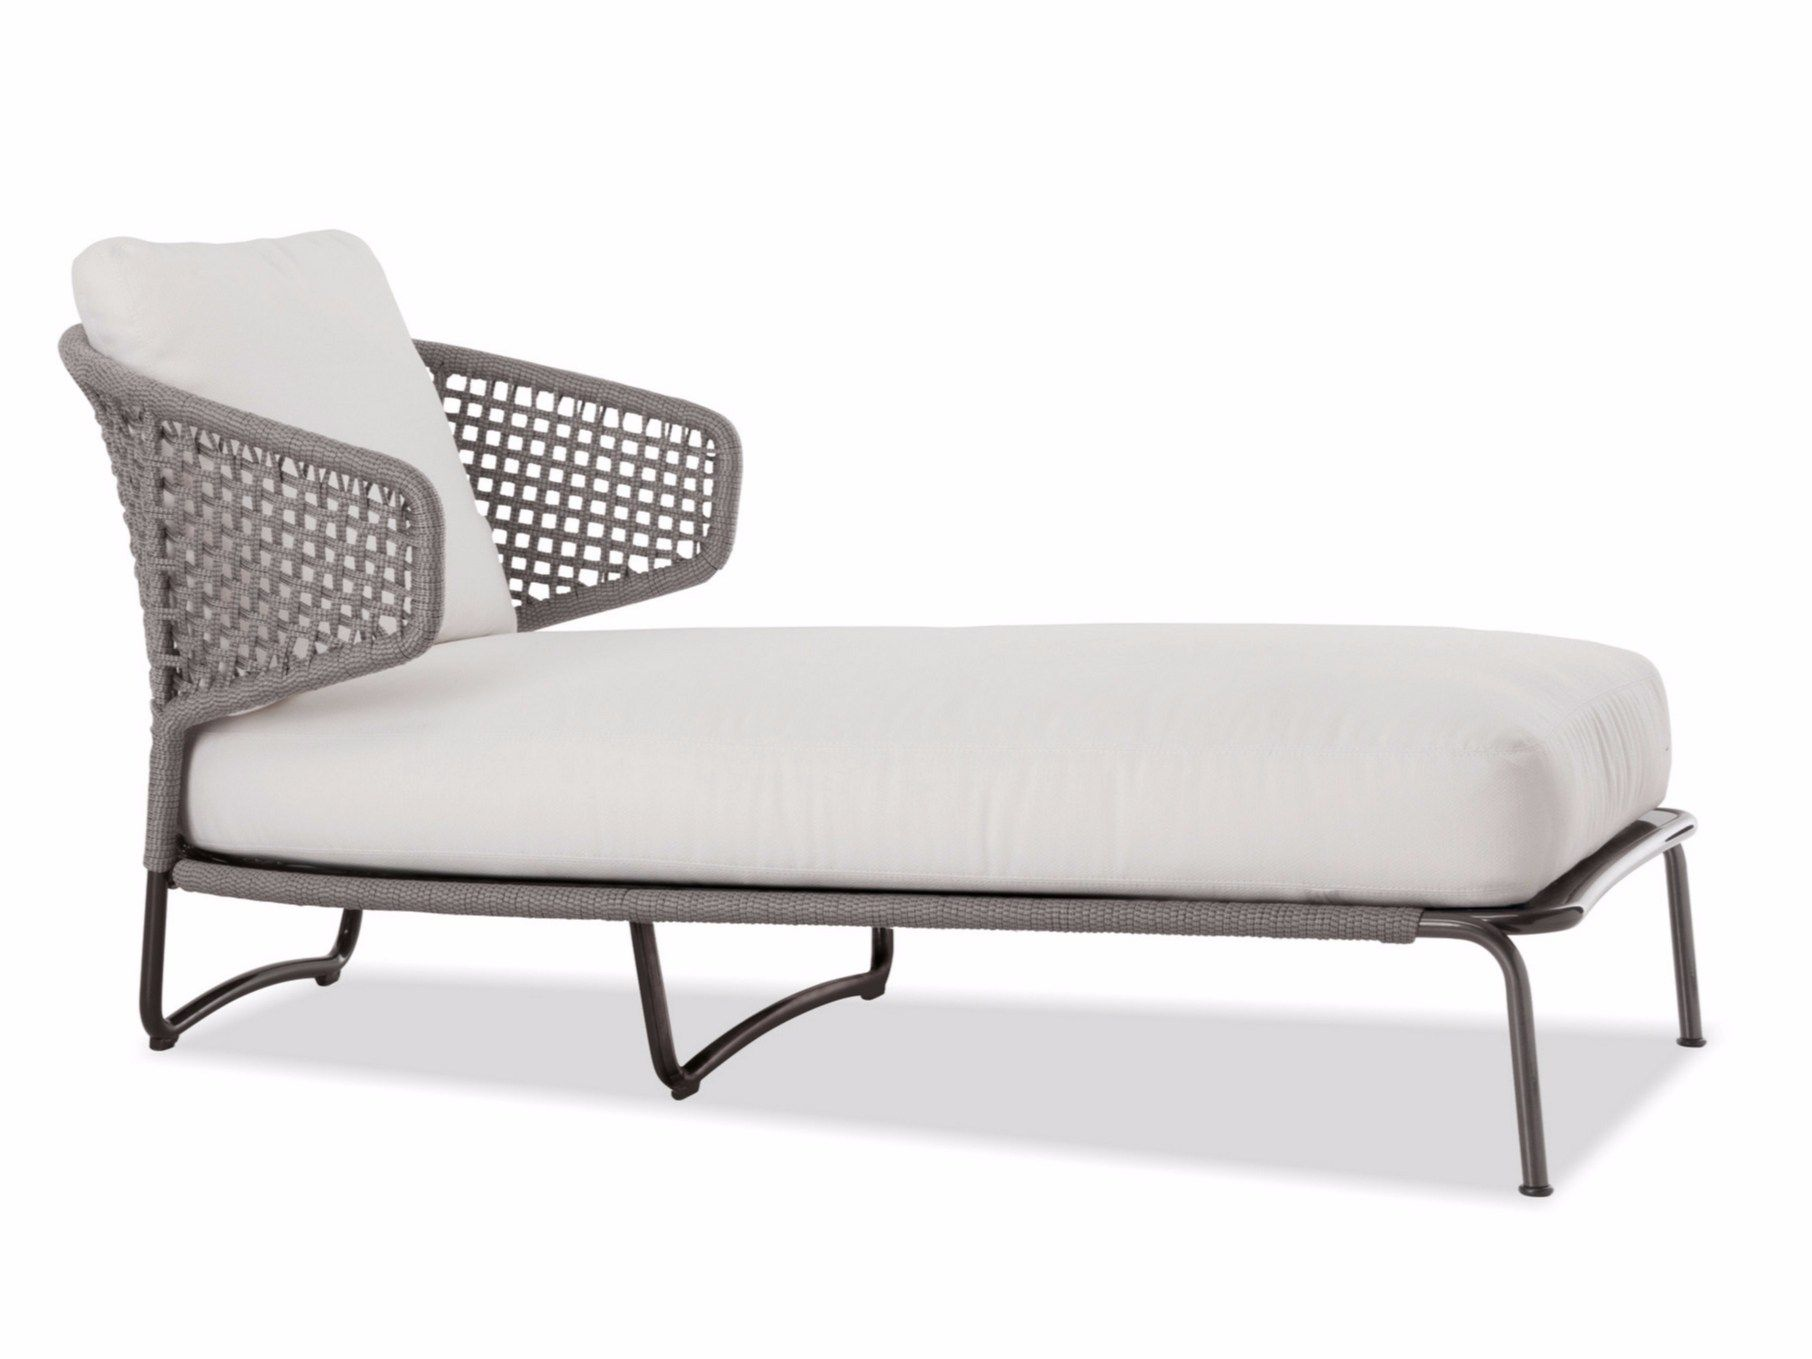 Download the catalogue and request prices of Aston cord outdoor chaise- lounge By minotti  sc 1 st  Pinterest : chaise lounge prices - Sectionals, Sofas & Couches